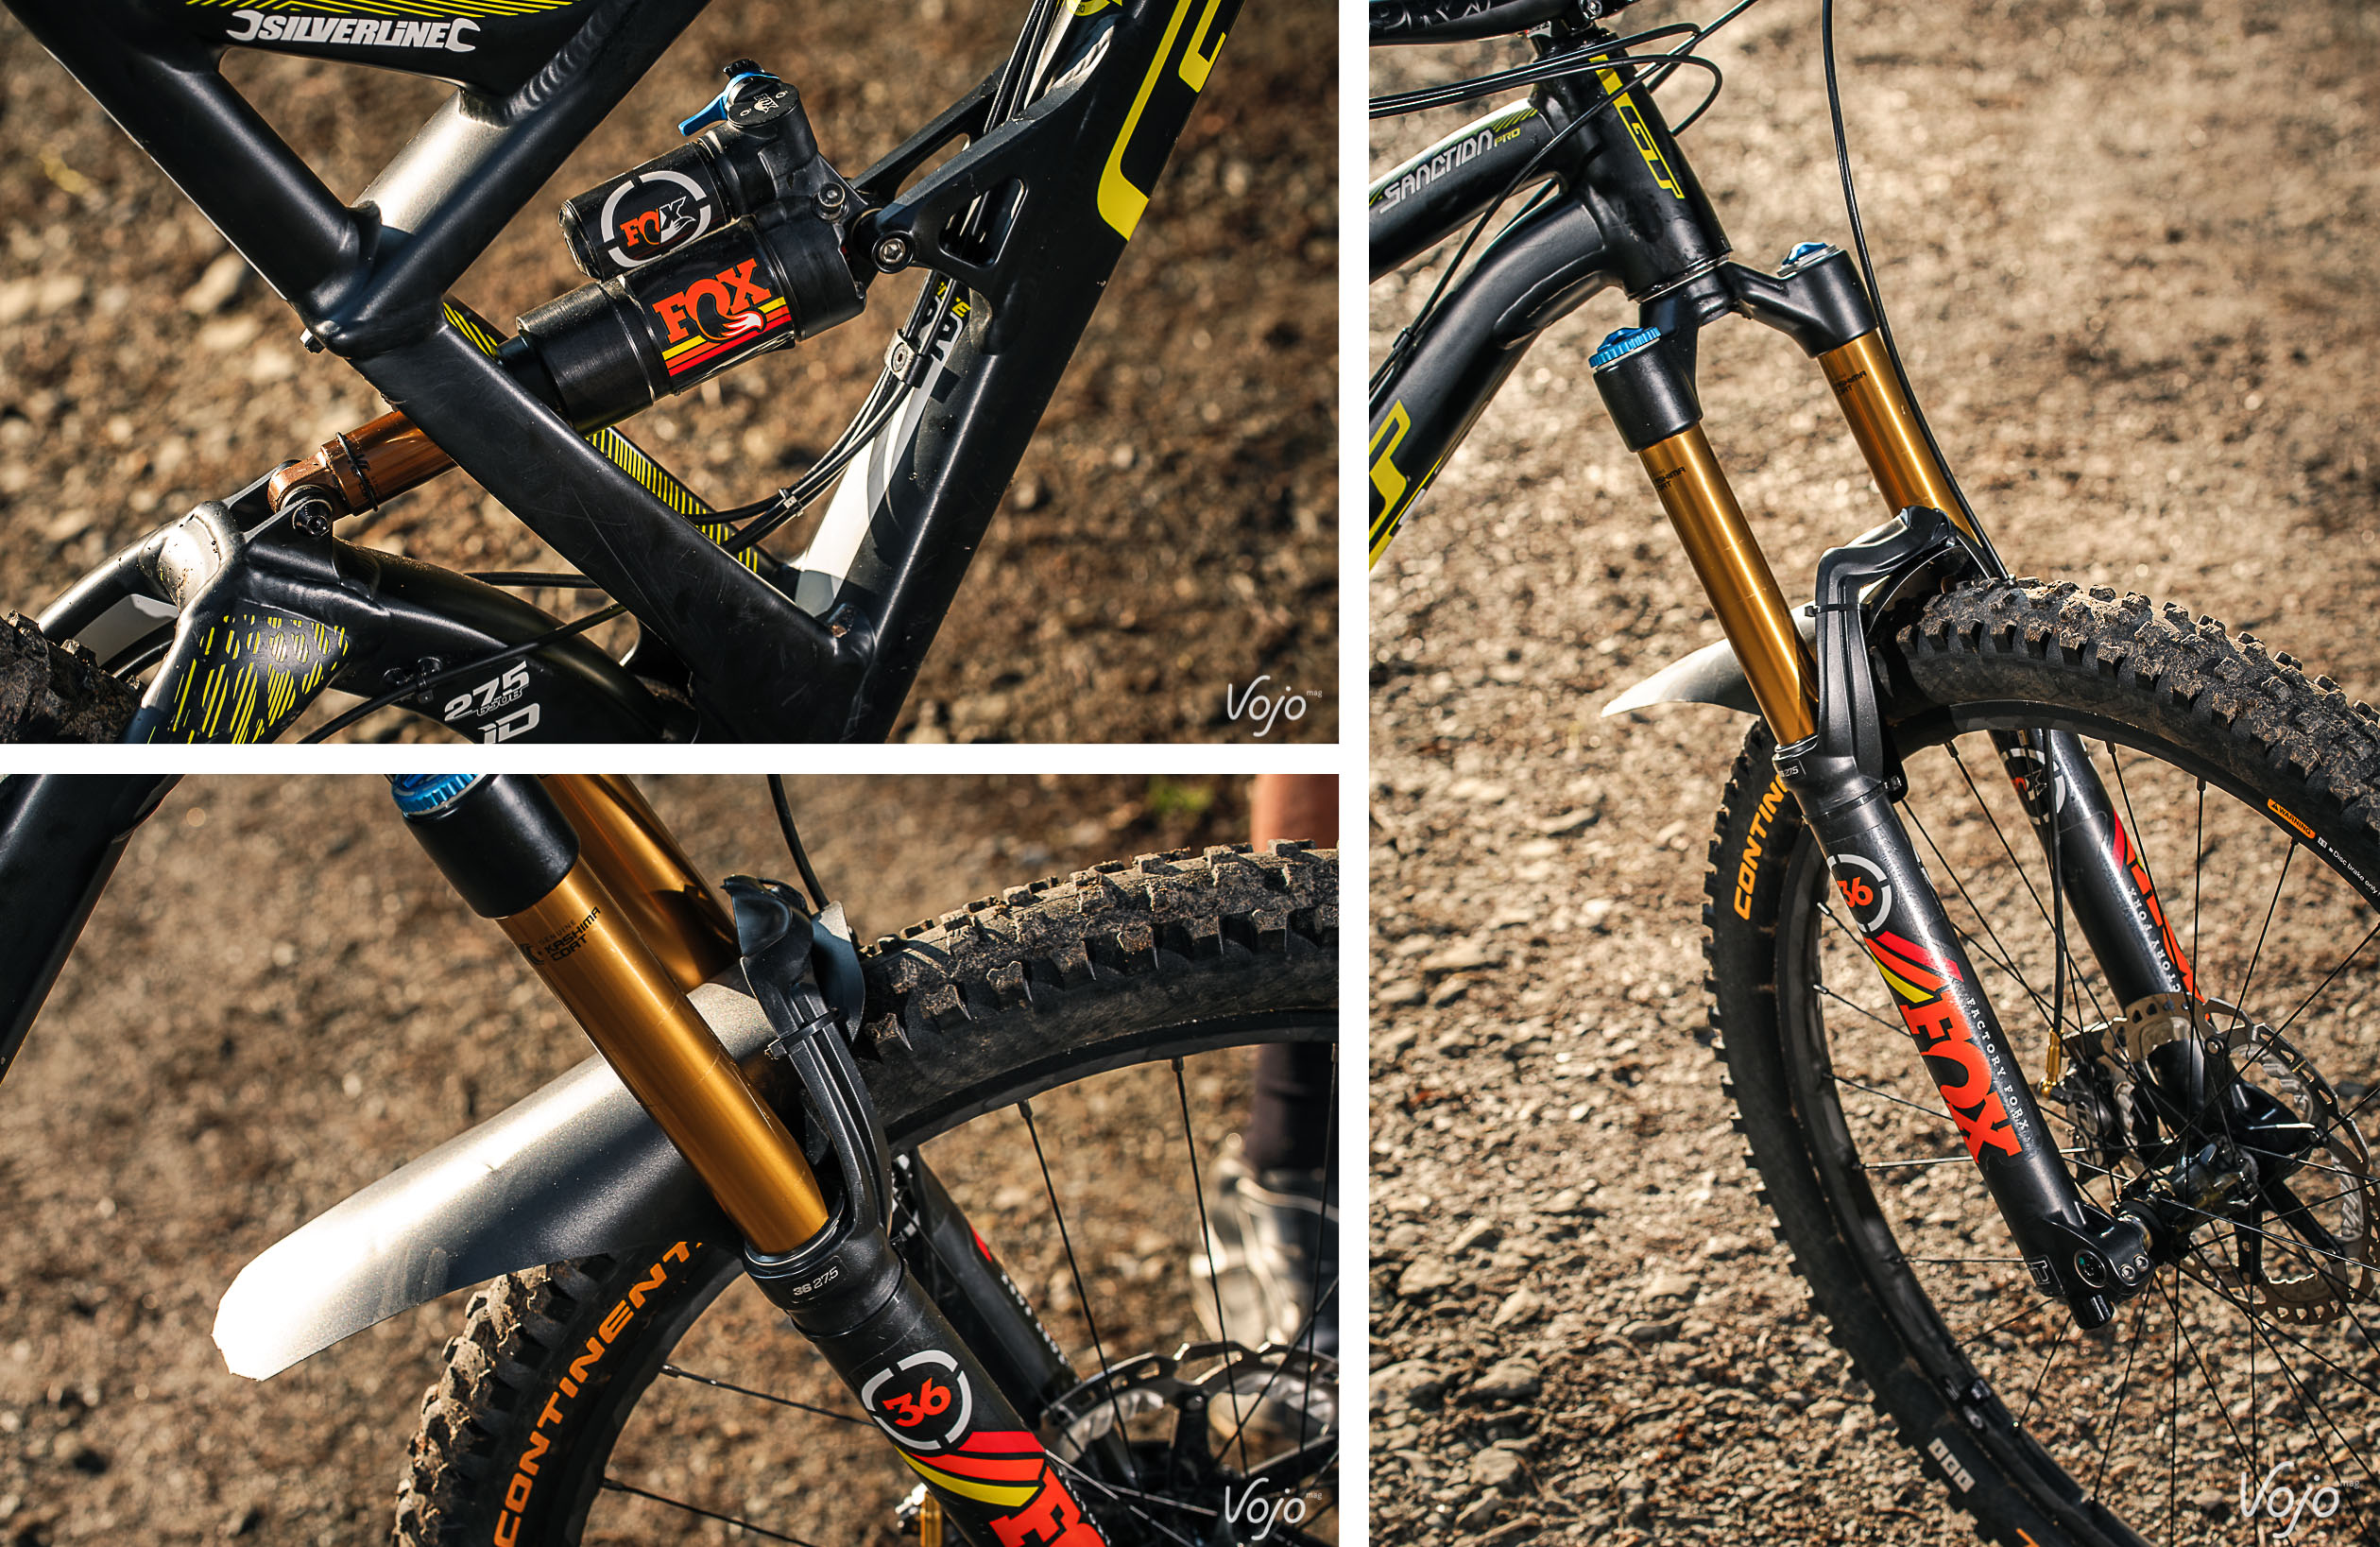 Compo4_Martin_Maes_GT_Sanction_MTB_Bike_Check_Copyright_OBeart_VojoMag-1